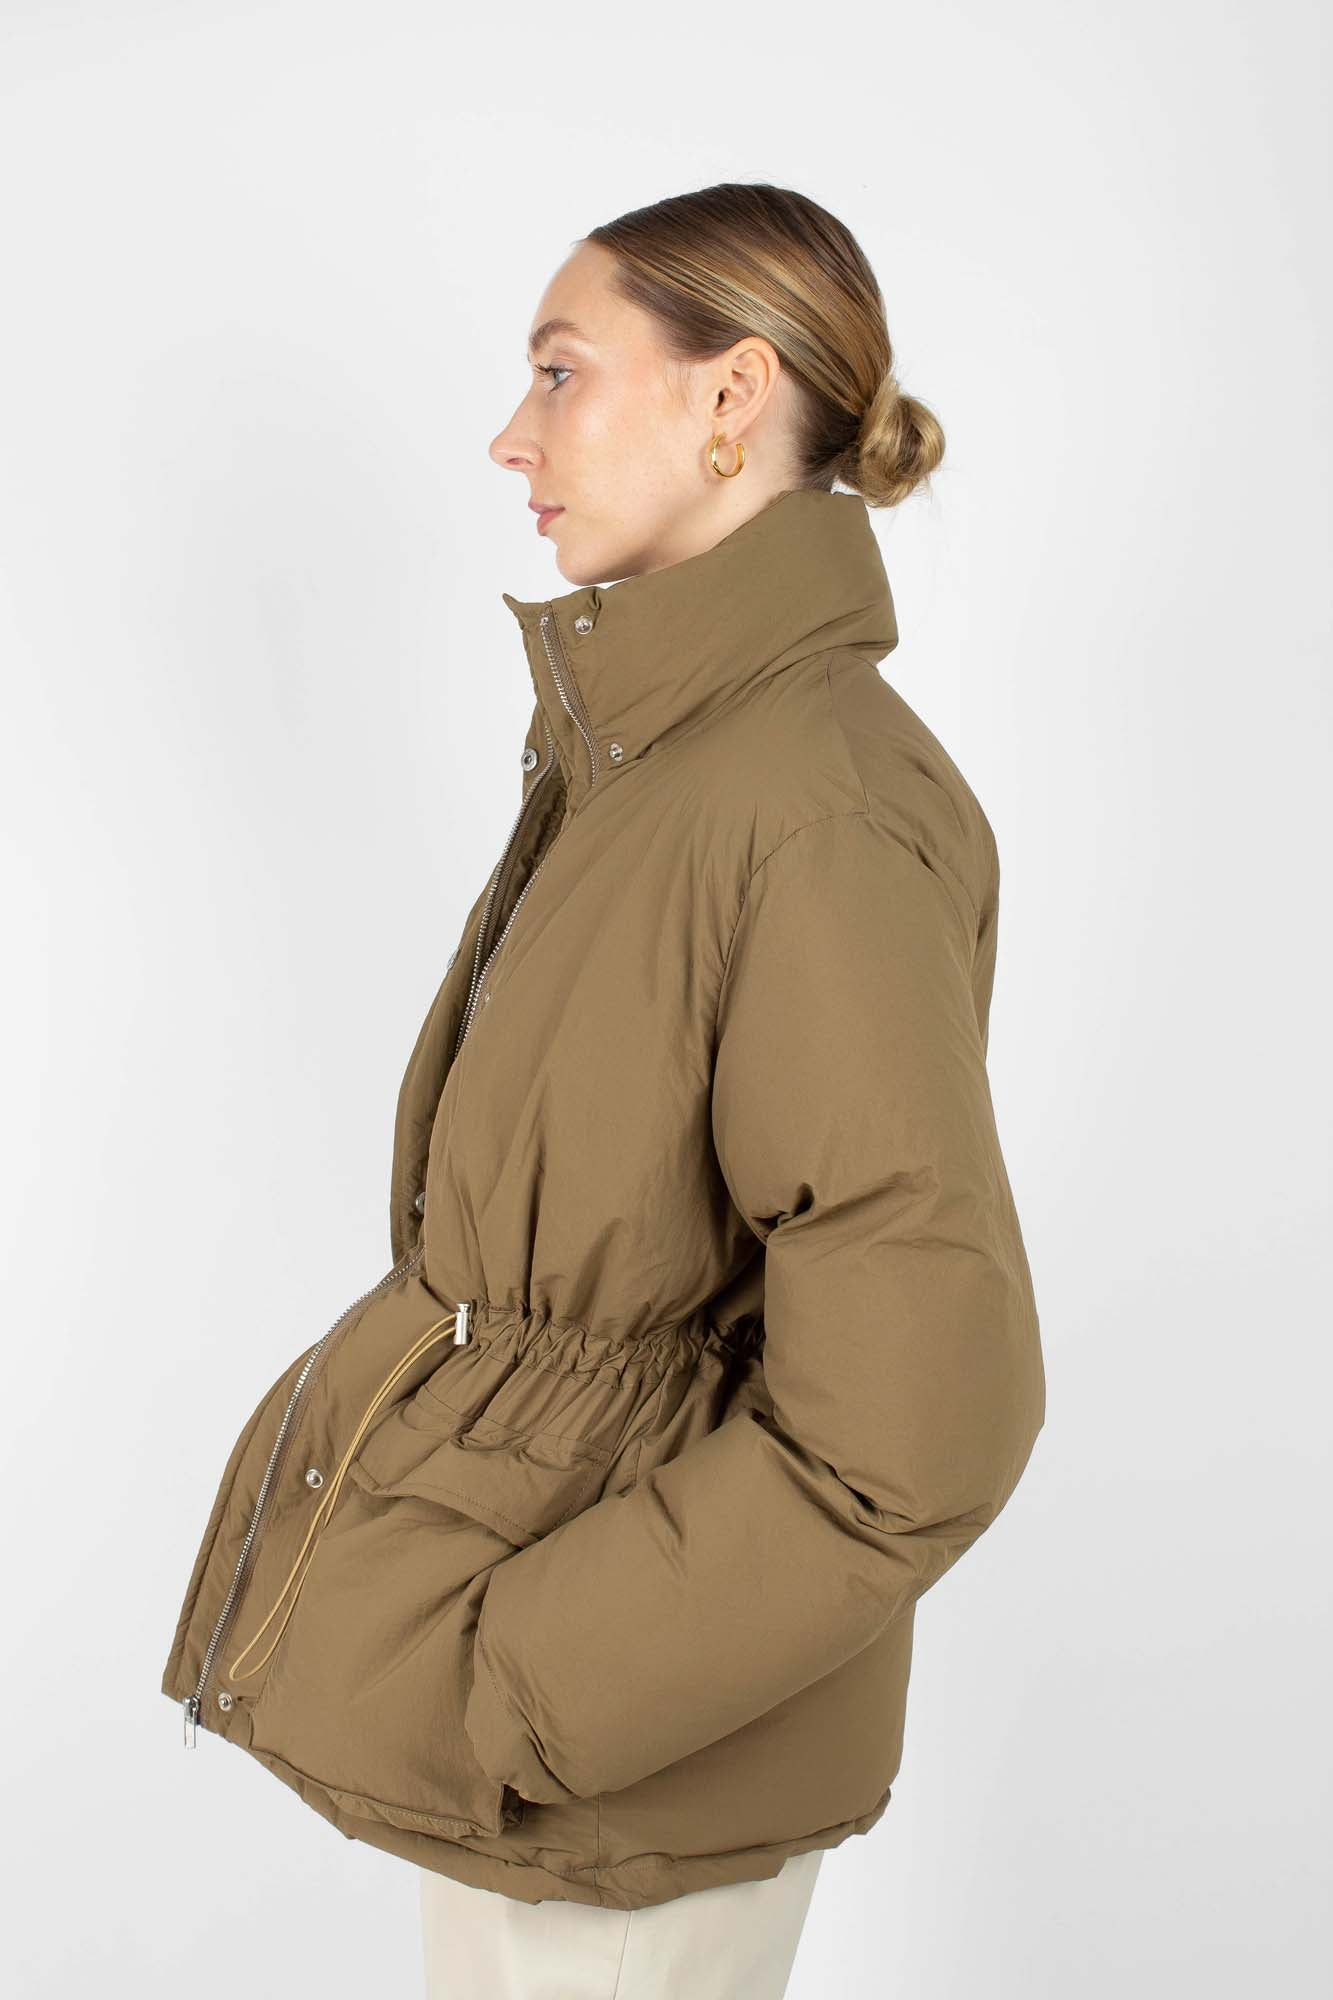 Khaki patch pocket puffer jacket2